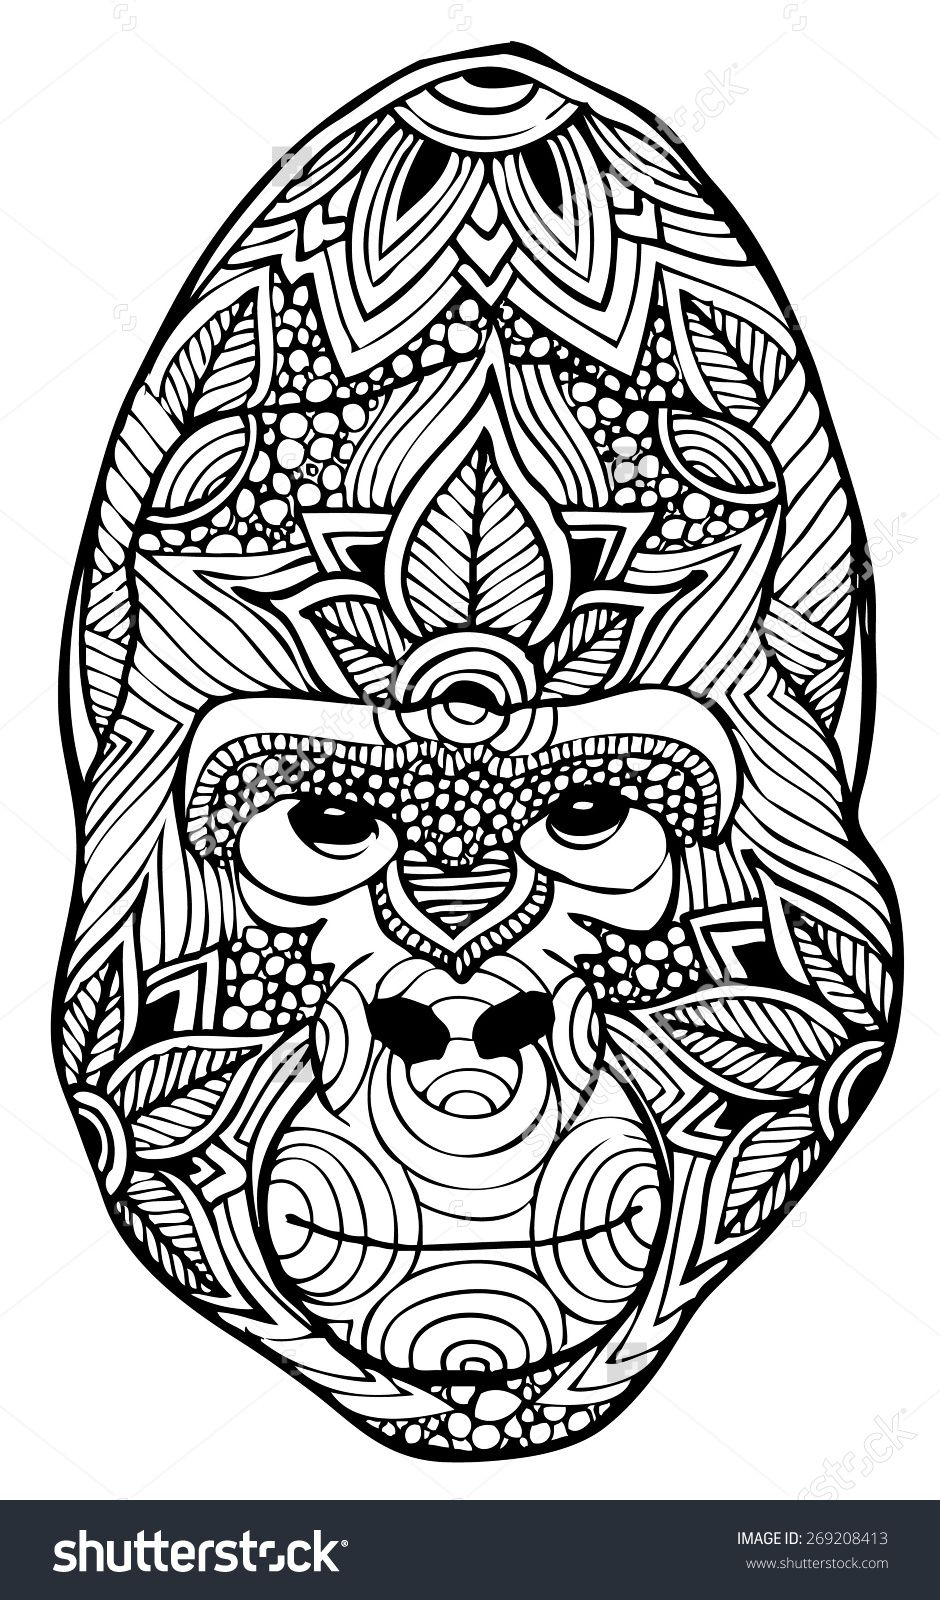 Pin By Coloring Pages For Adults On Coloring Ape Animal Coloring Pages Cute Coloring Pages Zentangle